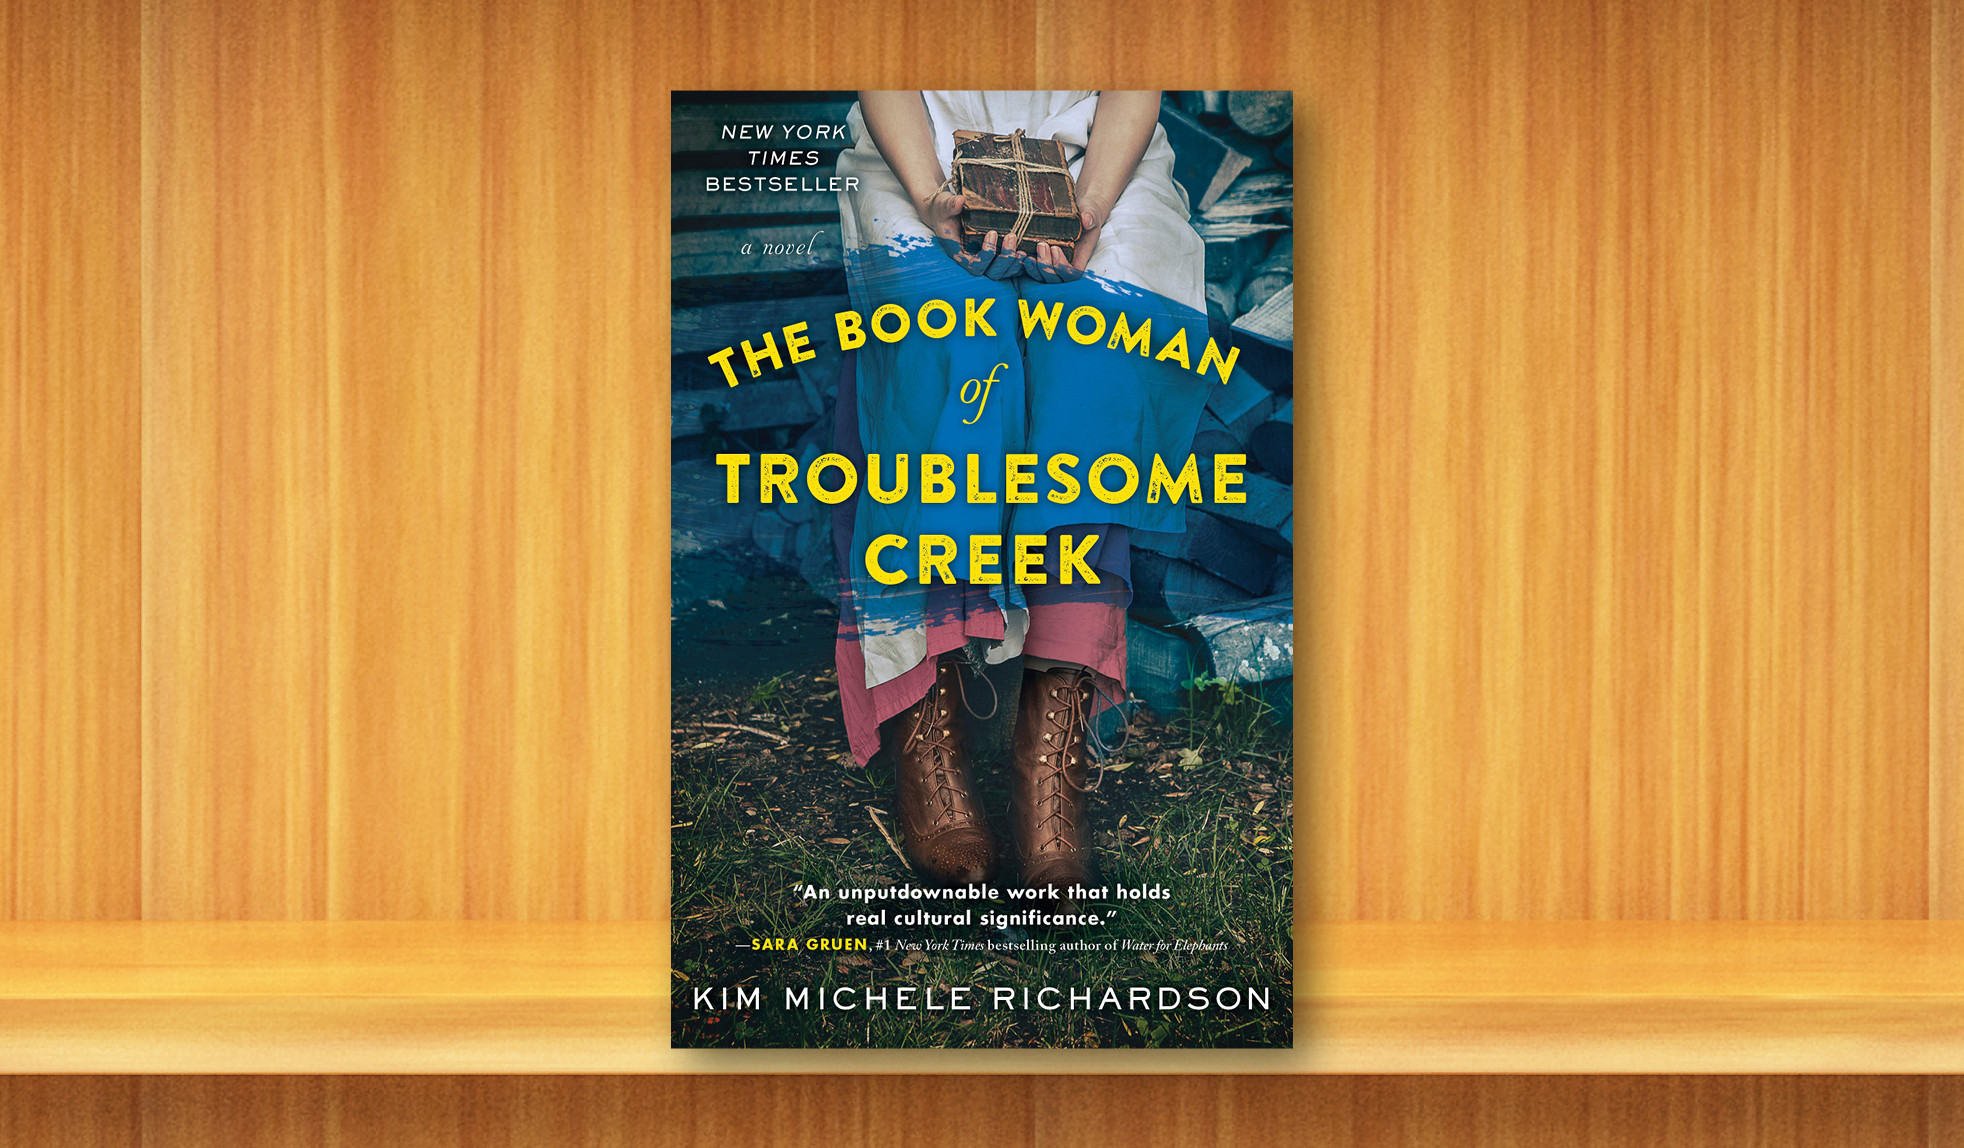 Join to access our January-March read, The Book Woman of Troublesome Creek!